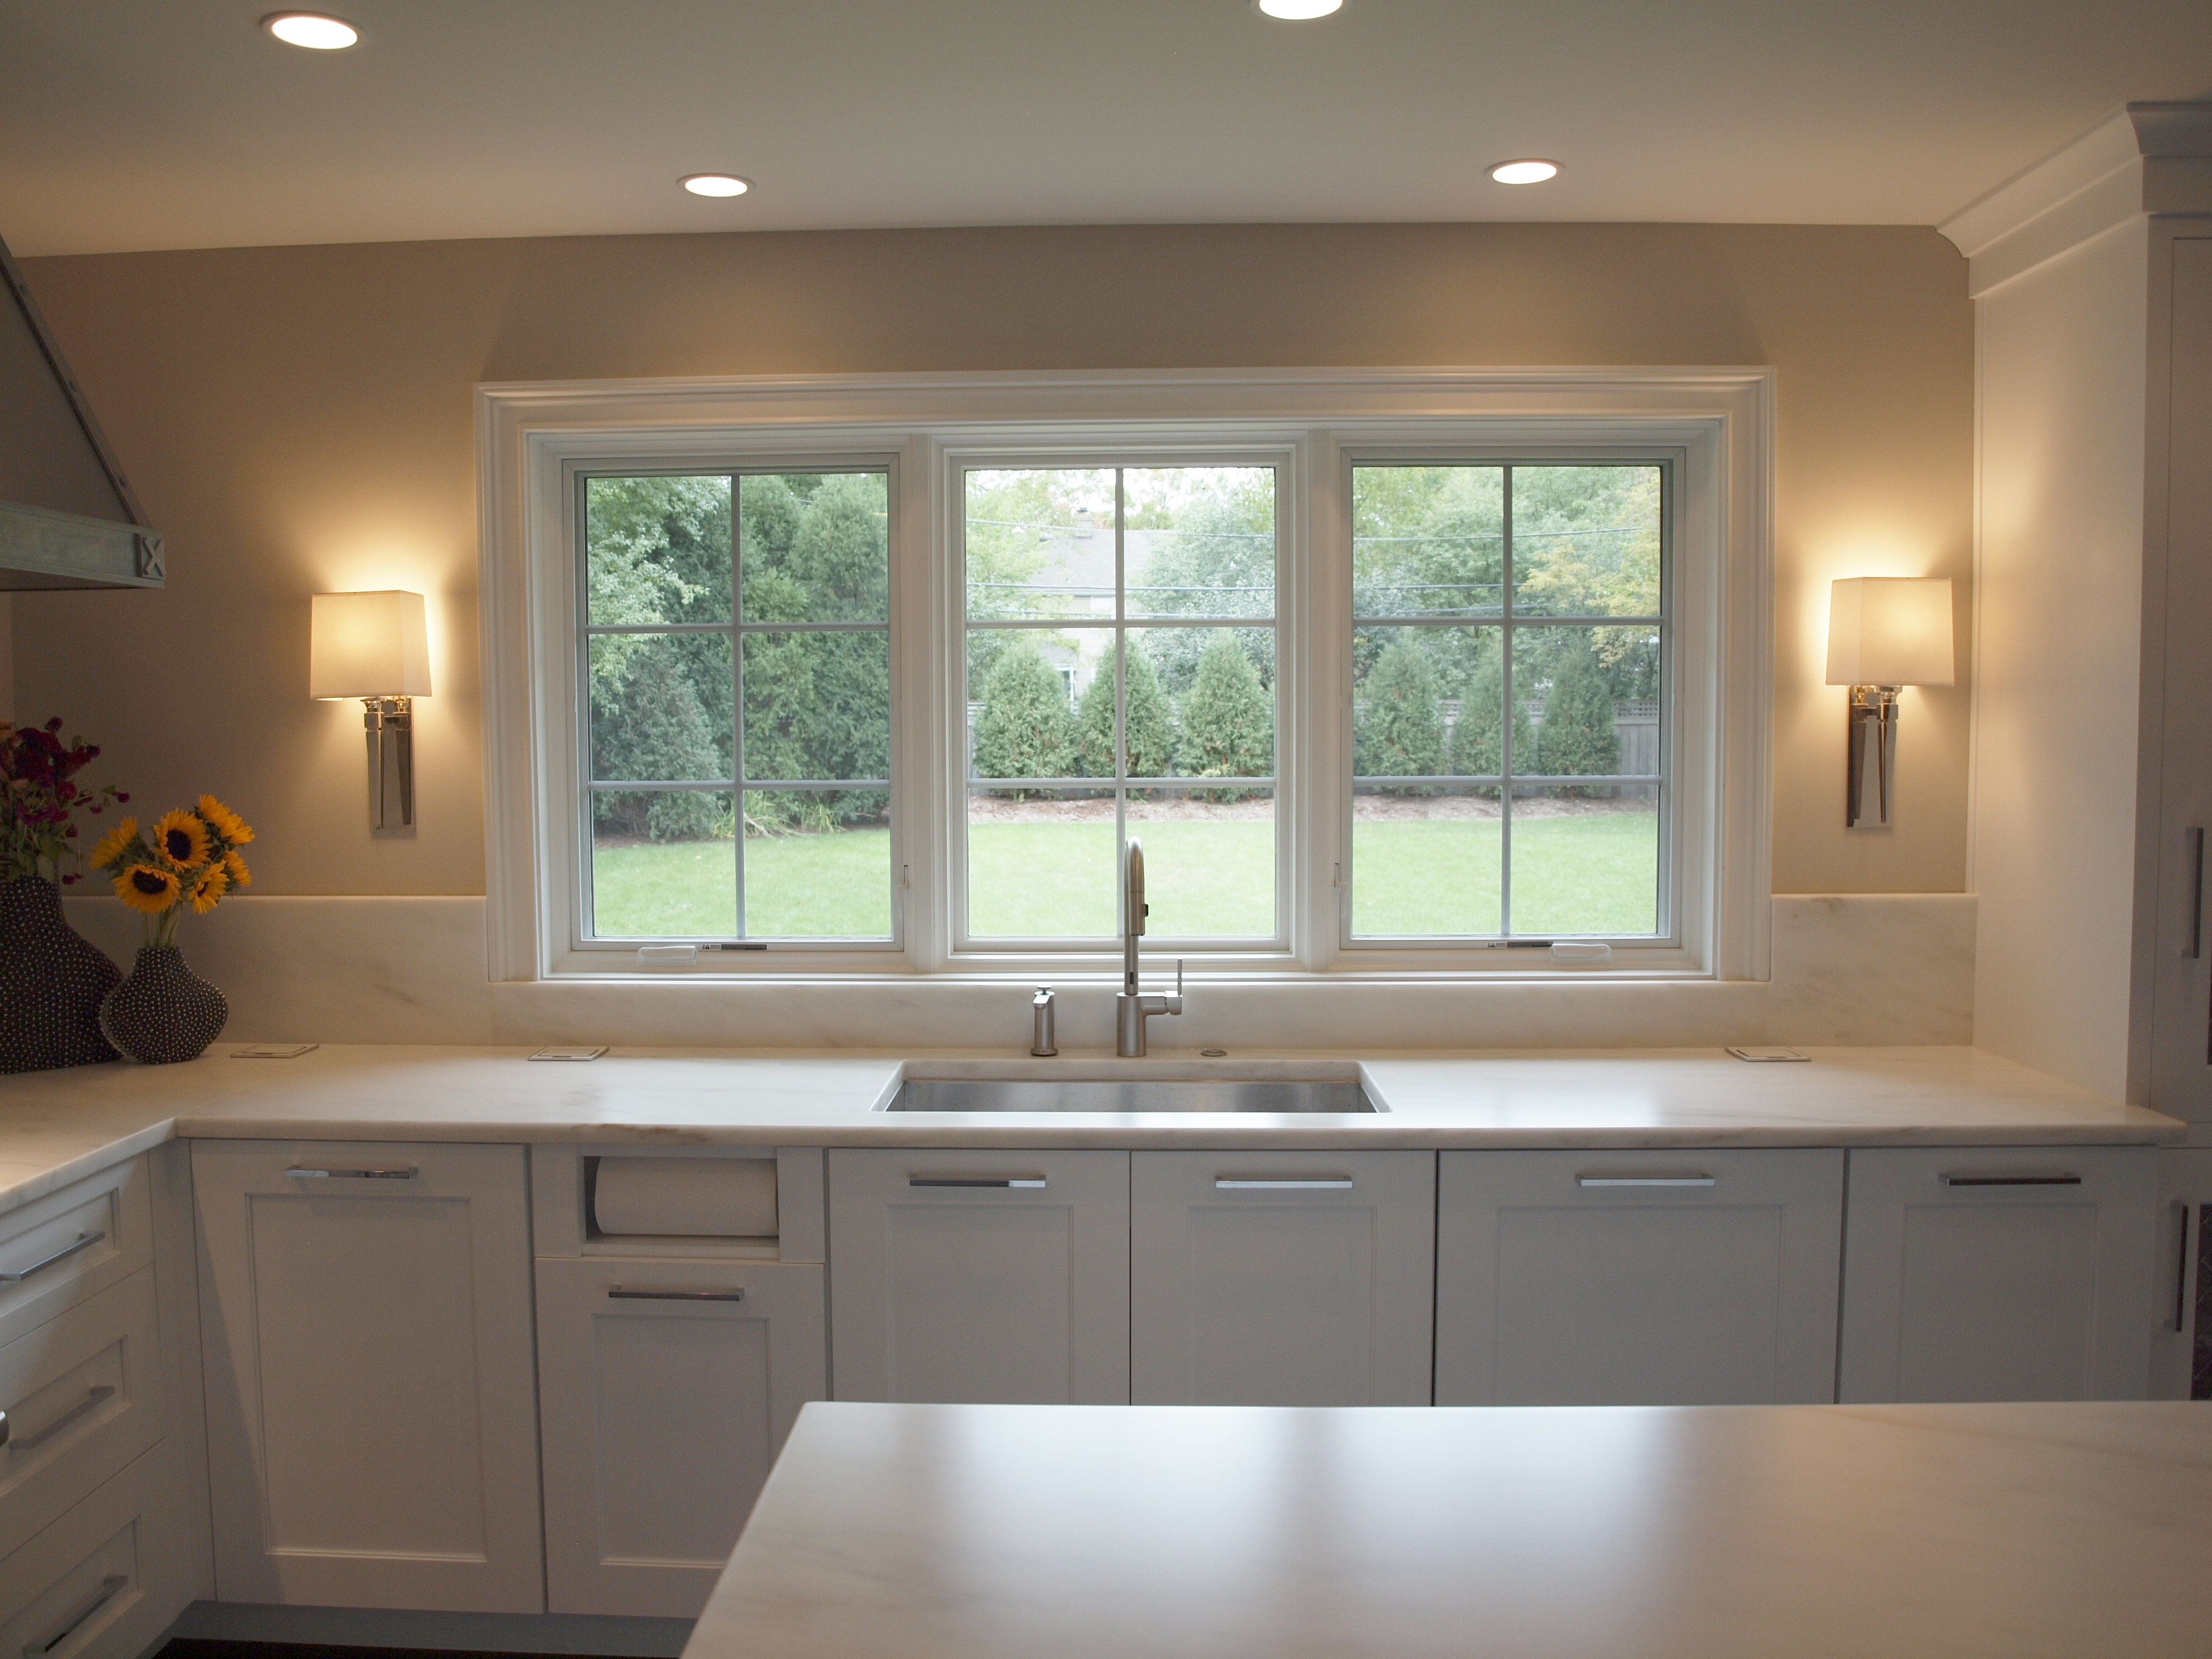 kitchen sink with large windows : Normandy Remodeling